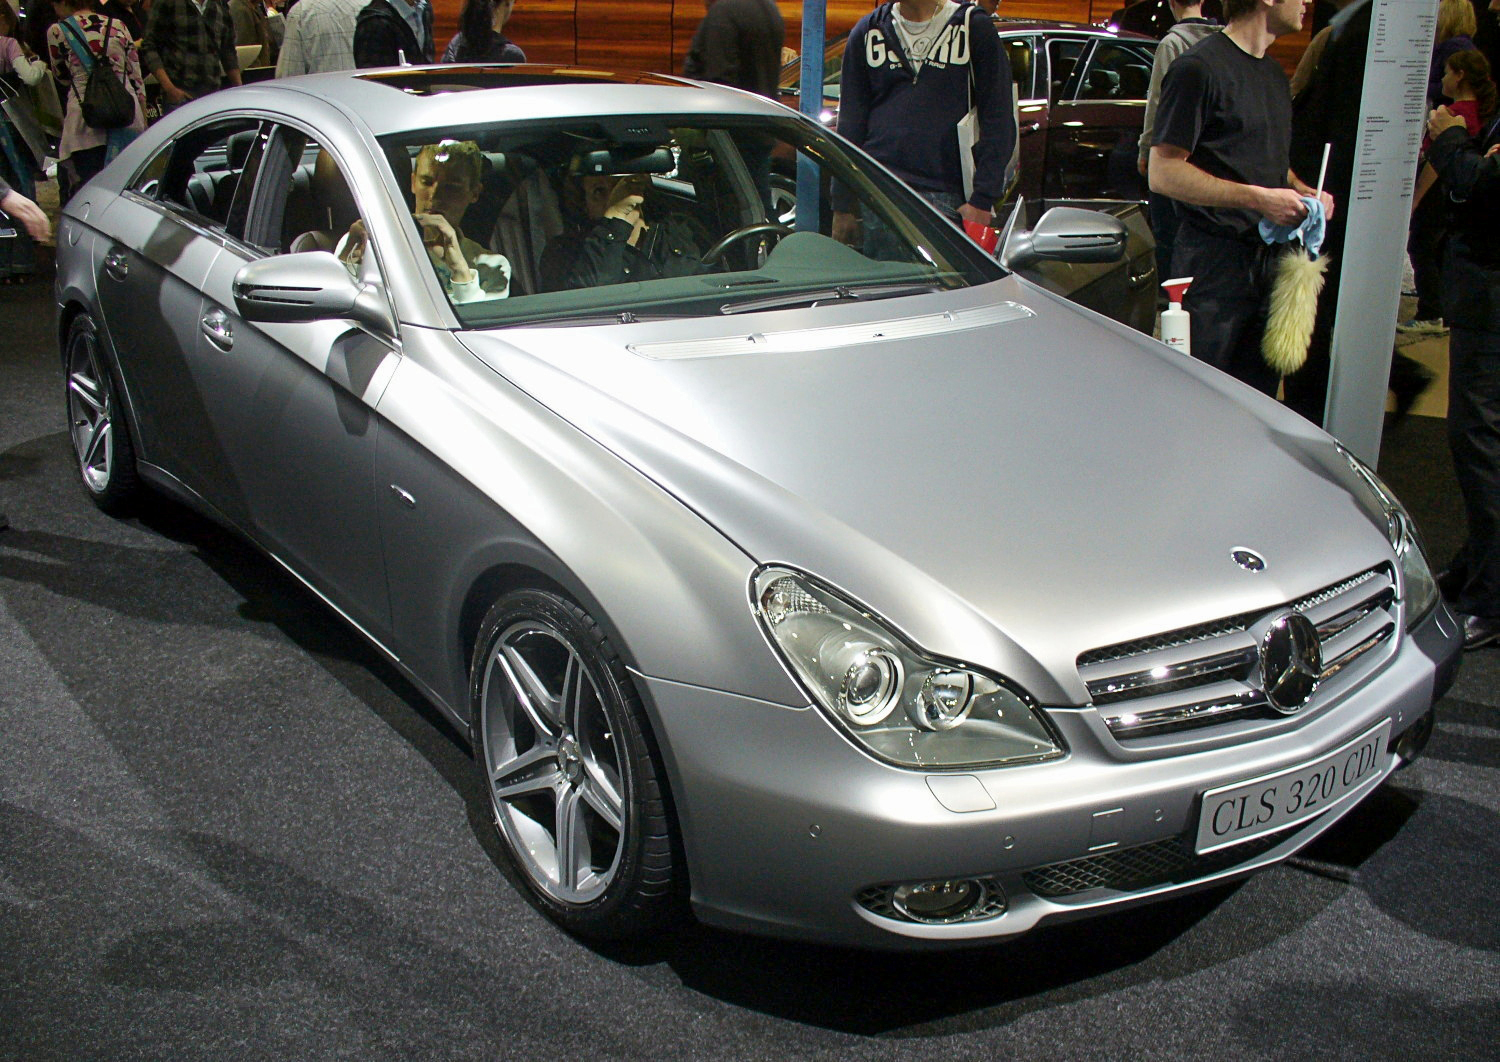 file mercedes benz cls 320 cdi grand edition jpg wikipedia. Black Bedroom Furniture Sets. Home Design Ideas